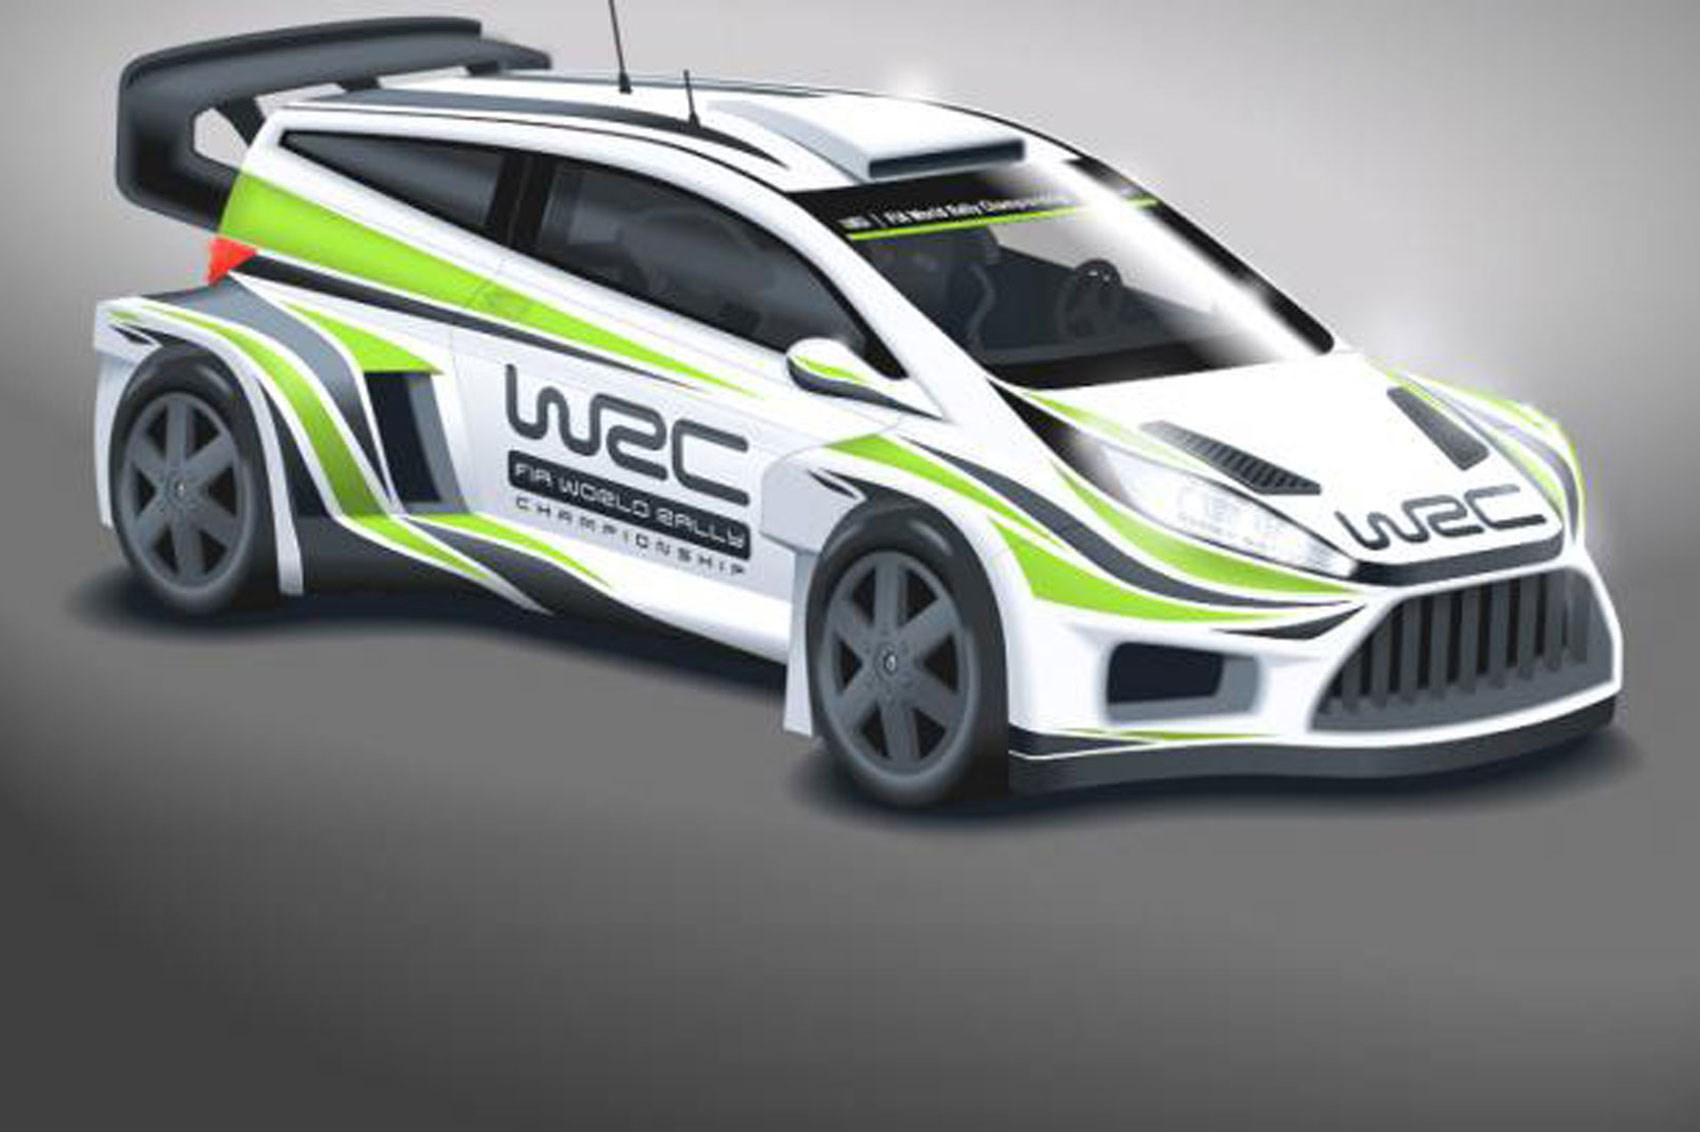 Ultrablogus  Mesmerizing Wild New Look For Wrc Cars In  By Car Magazine With Great Wrc Cars Will Get Wider Bodies Bigger Wings And More Power For  With Awesome Spec Miata Interior Also  Kia Soul Interior In Addition  Lincoln Mkx Interior And Sonata  Interior As Well As  Ford Mustang Interior Additionally Interior Nissan Murano From Carmagazinecouk With Ultrablogus  Great Wild New Look For Wrc Cars In  By Car Magazine With Awesome Wrc Cars Will Get Wider Bodies Bigger Wings And More Power For  And Mesmerizing Spec Miata Interior Also  Kia Soul Interior In Addition  Lincoln Mkx Interior From Carmagazinecouk